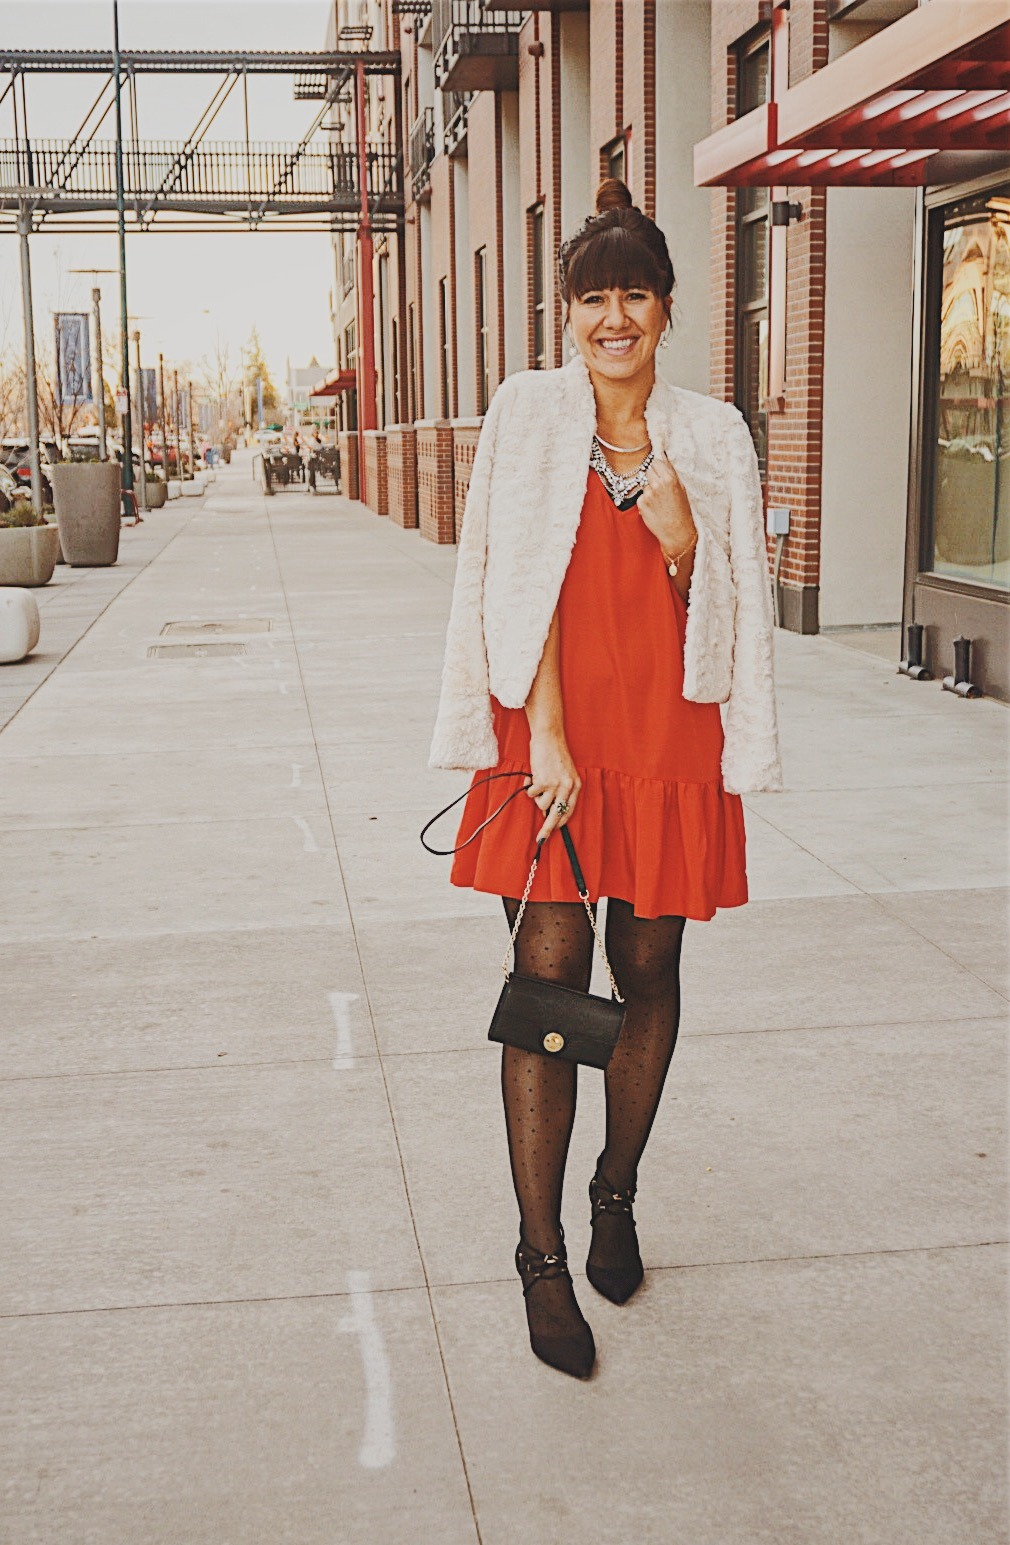 Holiday Red Dress / Holiday Dress Style / Mini Red Dress / Holiday Look Inspiration